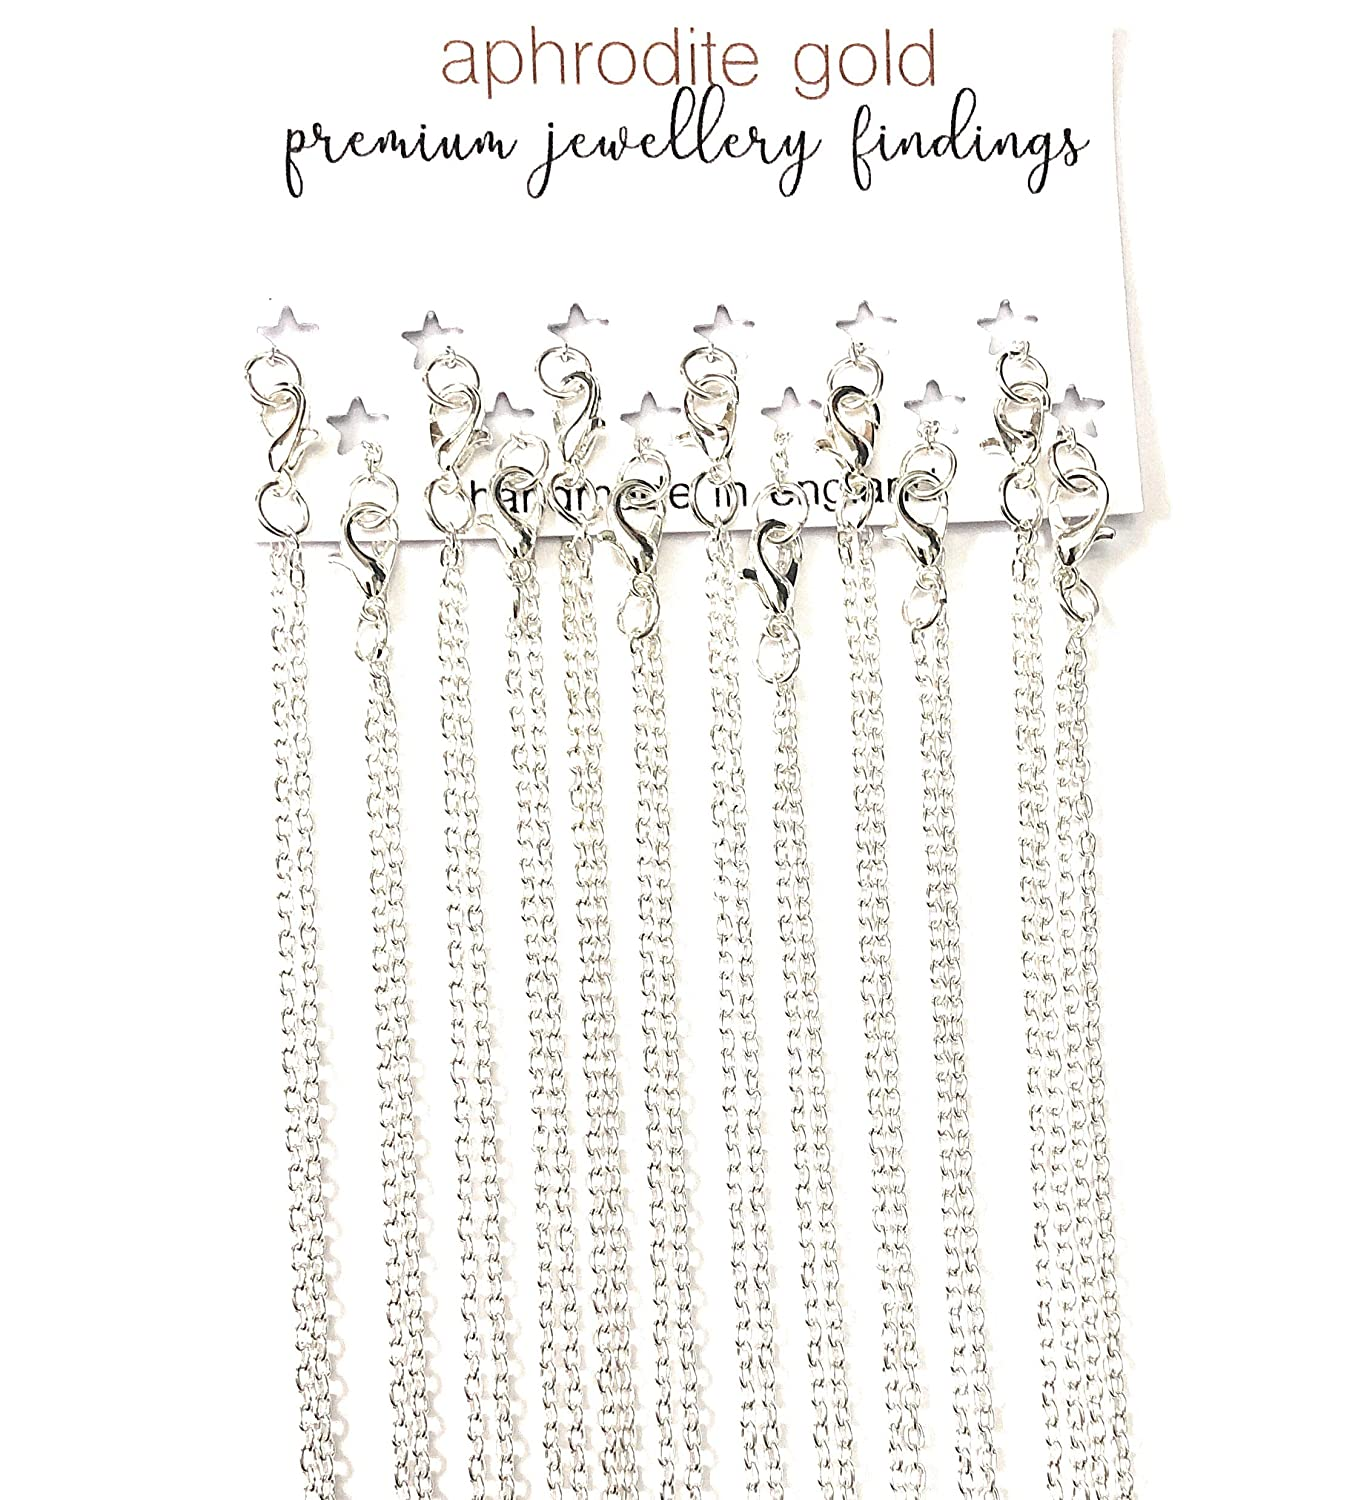 11 11 PCS 20 Silver Plated Link Chain Necklaces Jewellery Making Craft Wholesale Handmade in England